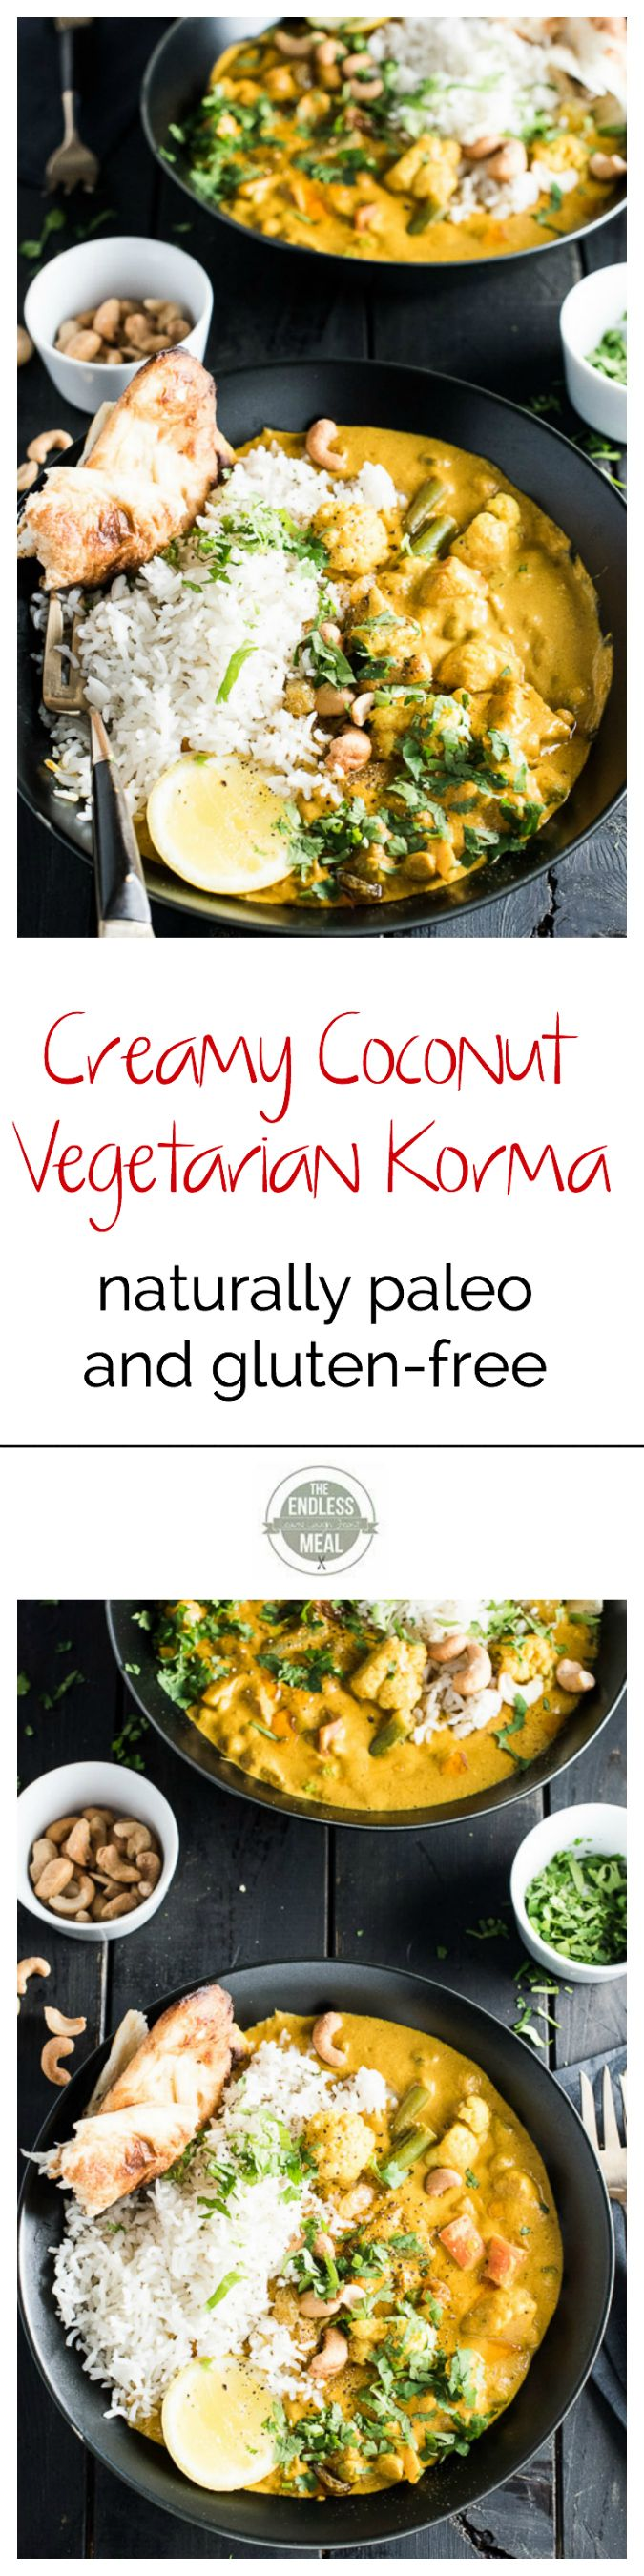 This easy to make Creamy Coconut Vegetarian Korma makes a great go-to Meatless Monday meal. It's naturally paleo and gluten-free and can easily be made vegan. Serve it with a side of rice, quinoa or cauliflower rice for a quick and delicious dinner. | theendlessmeal.com